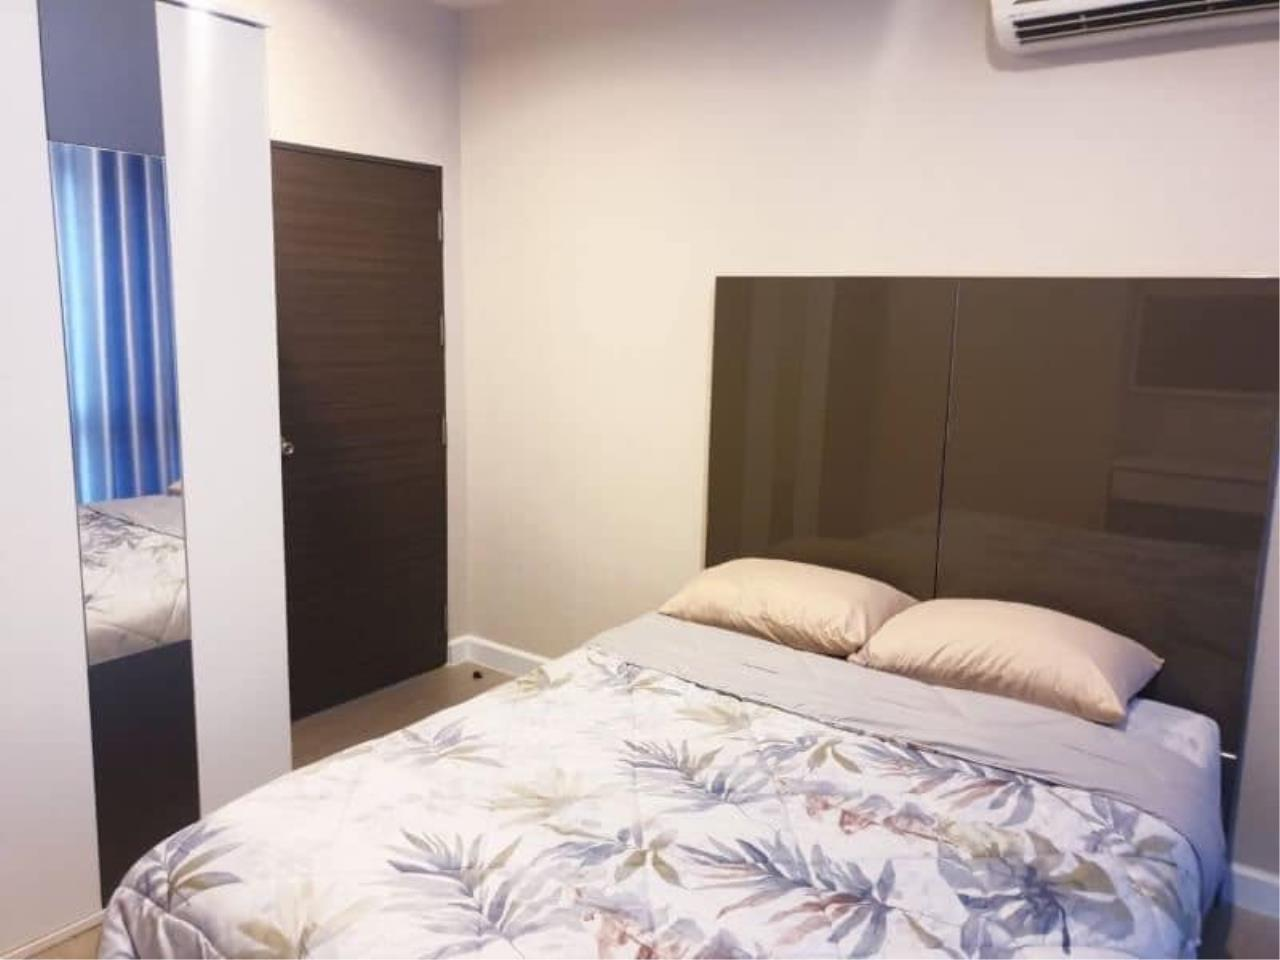 Agent Thawanrat Agency's Condo for rental Metro Sky Bangsue-Prachachuen Near BTS.Bang Son 1 bedroom,1 bathroom. size 36 sqm.Floor 12 th. fully furnished Ready to move in 5